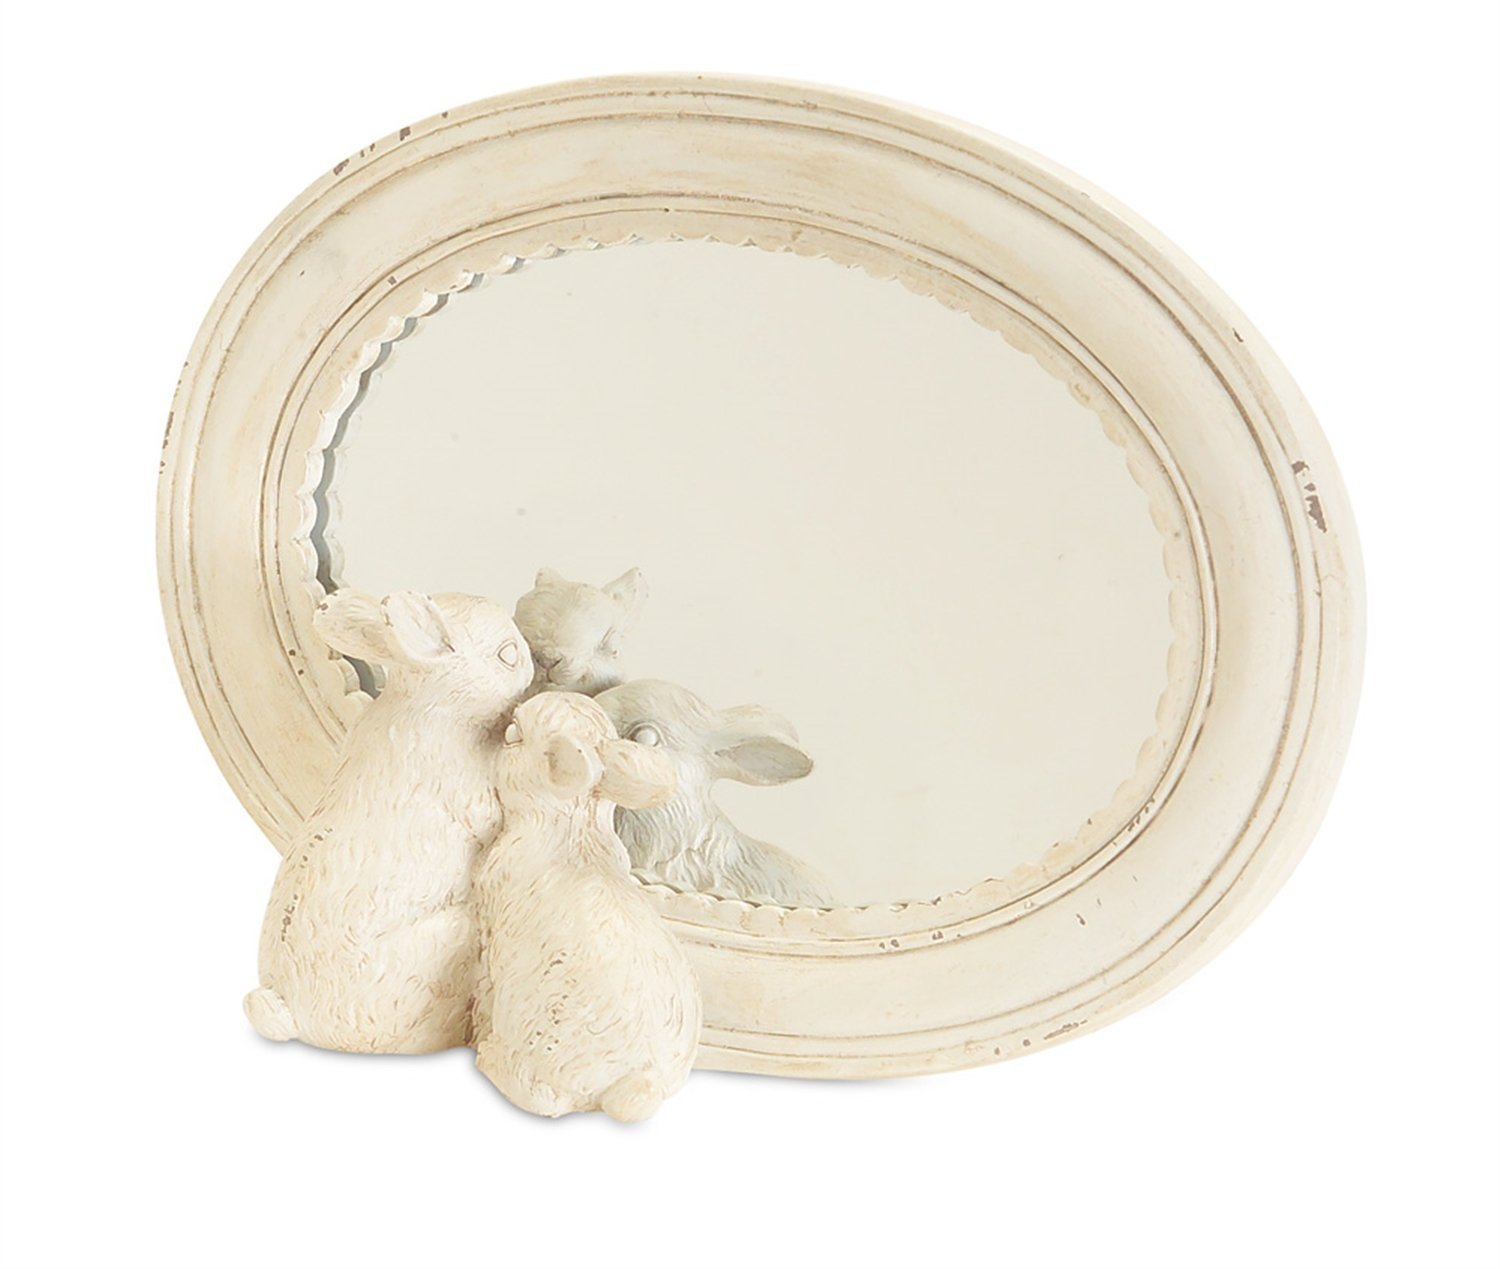 Scalloped Edge Mirror with Rabbits